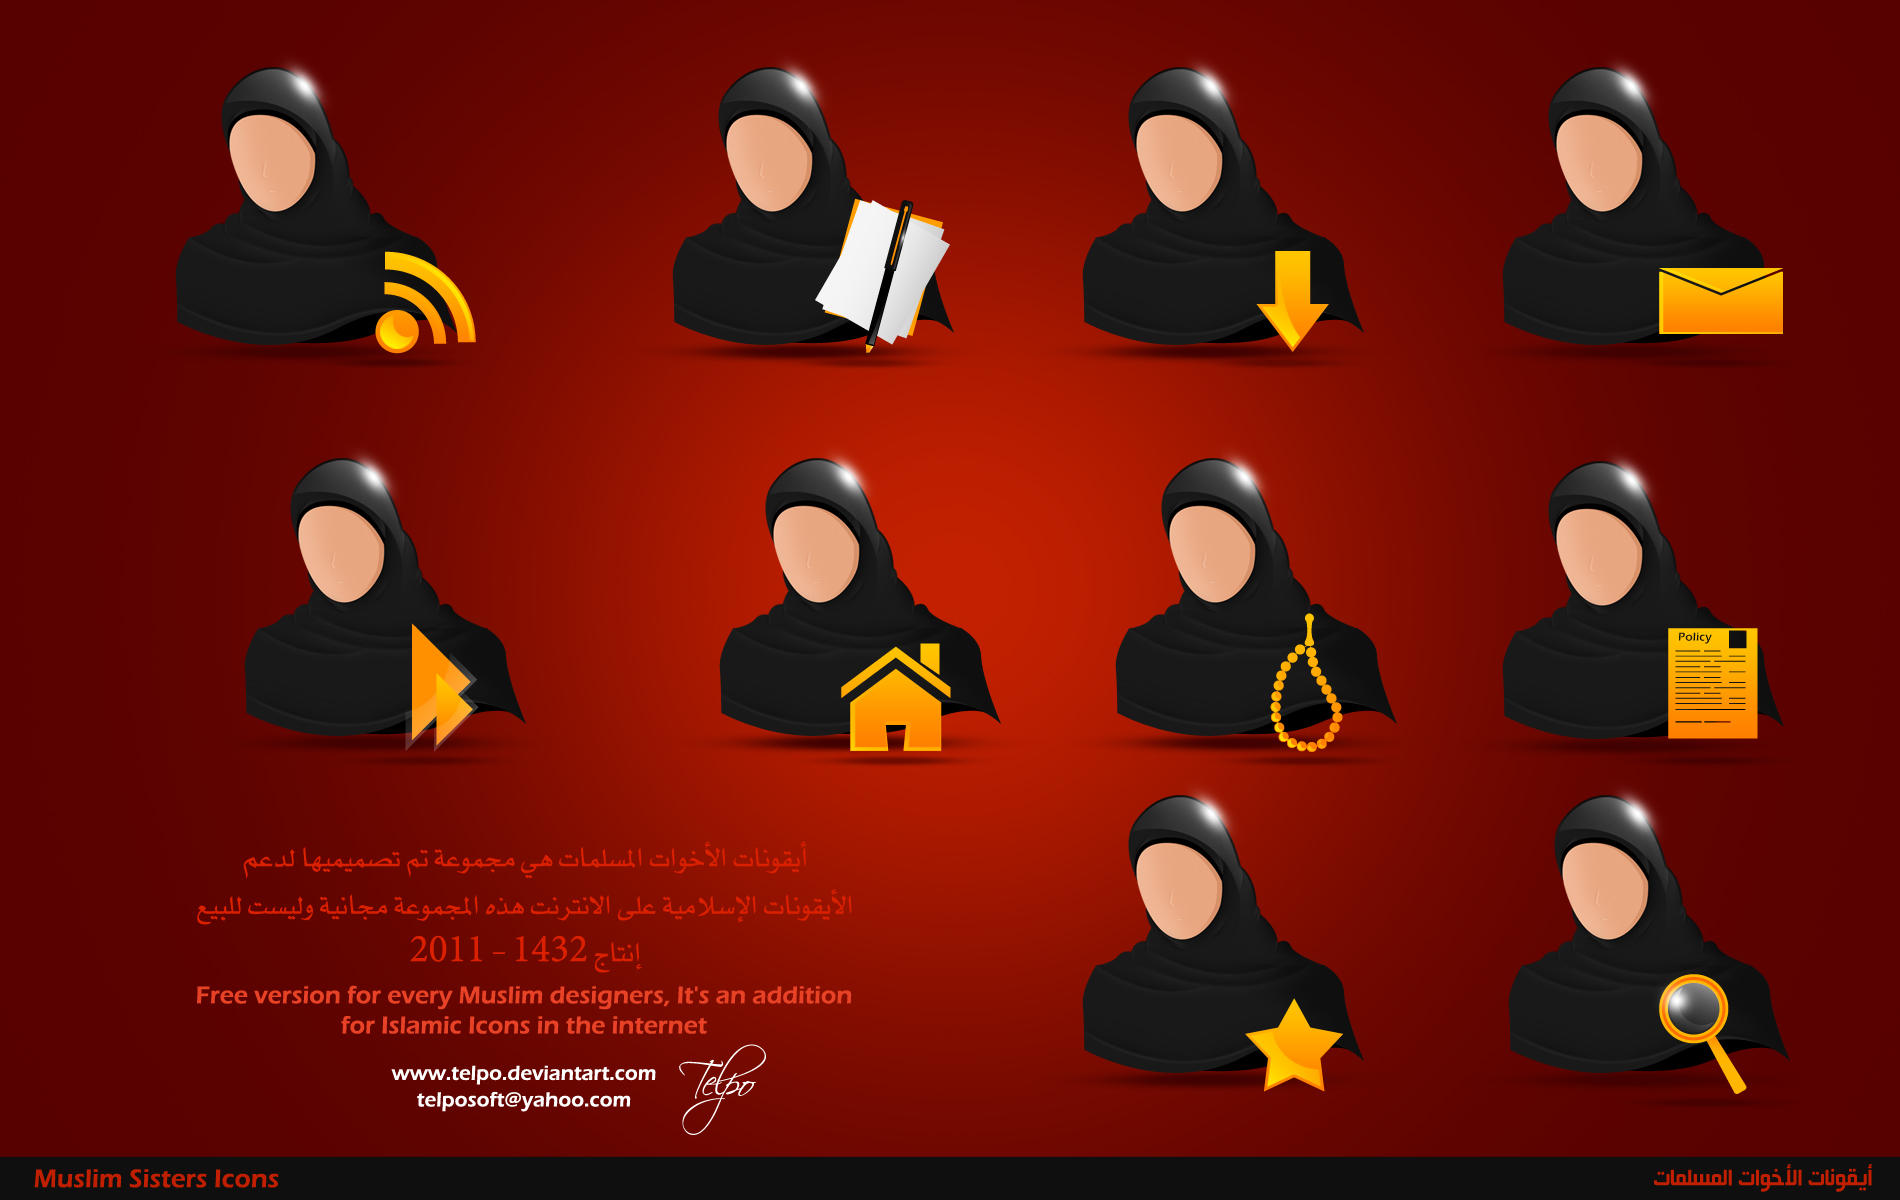 Muslim Sisters Icons by Telpo